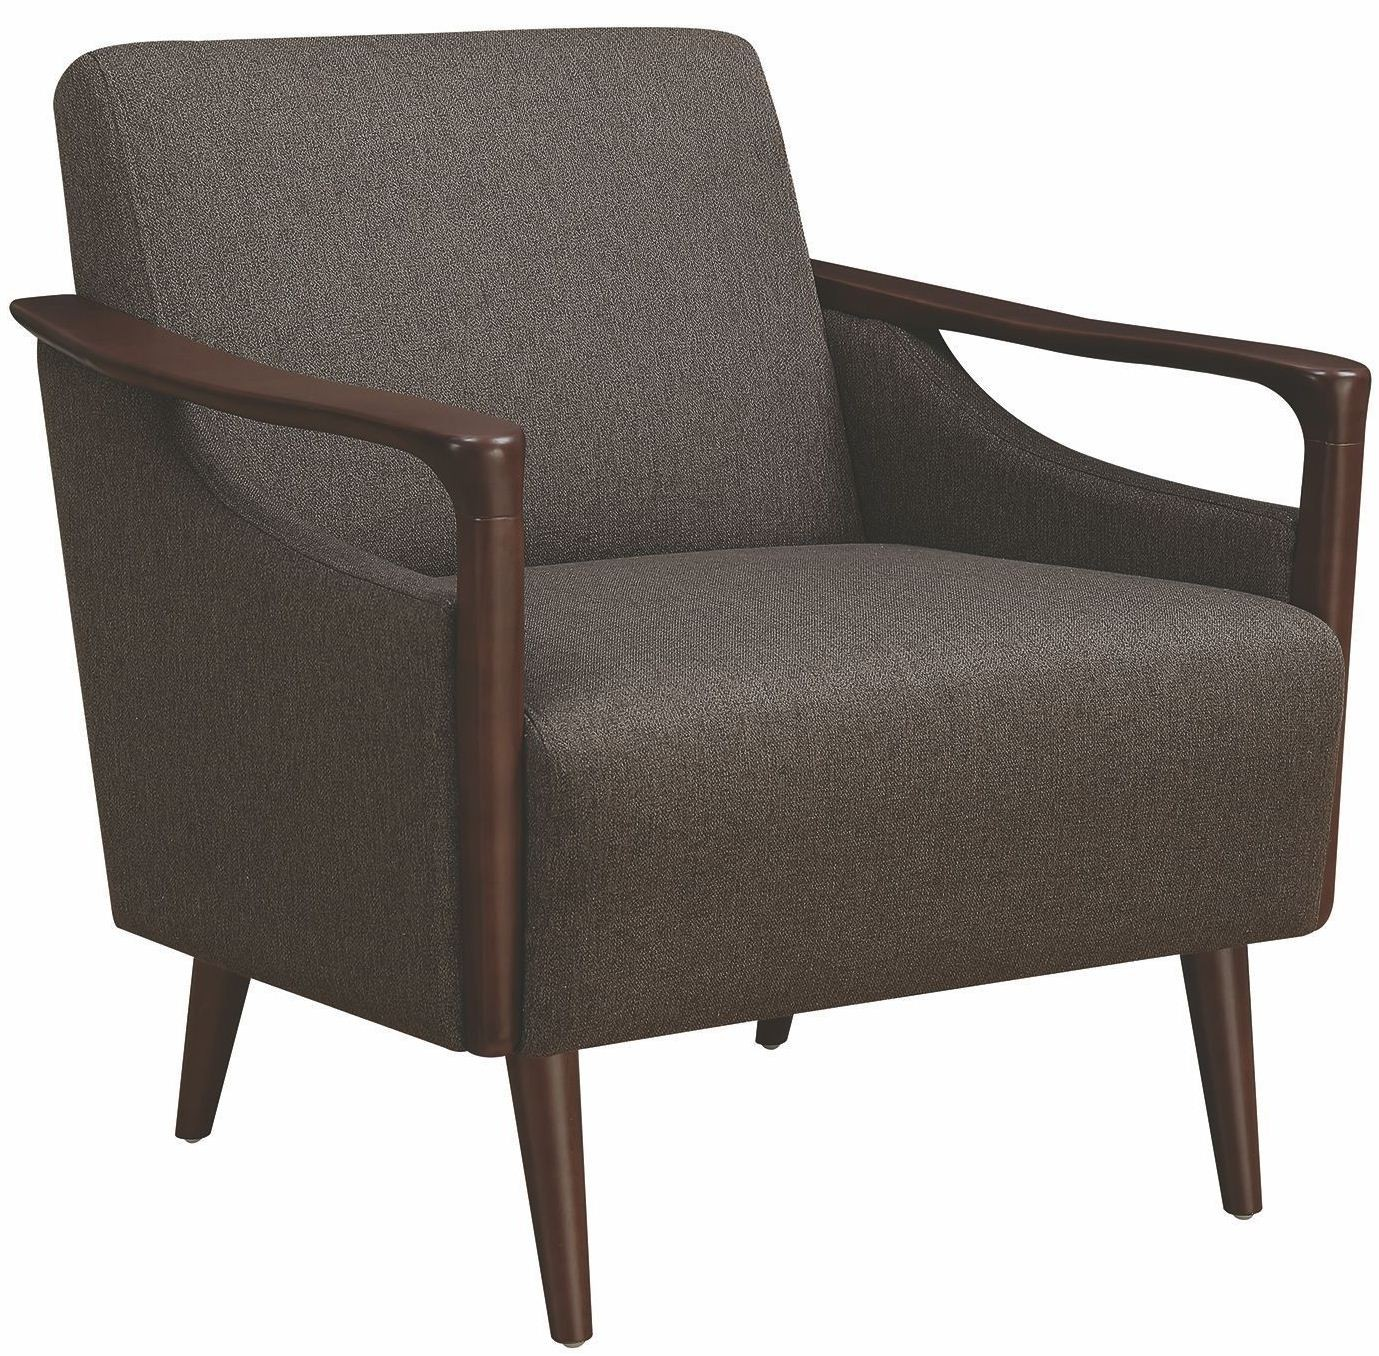 Brown Accent Chair by Scott Living from Coaster  Coleman